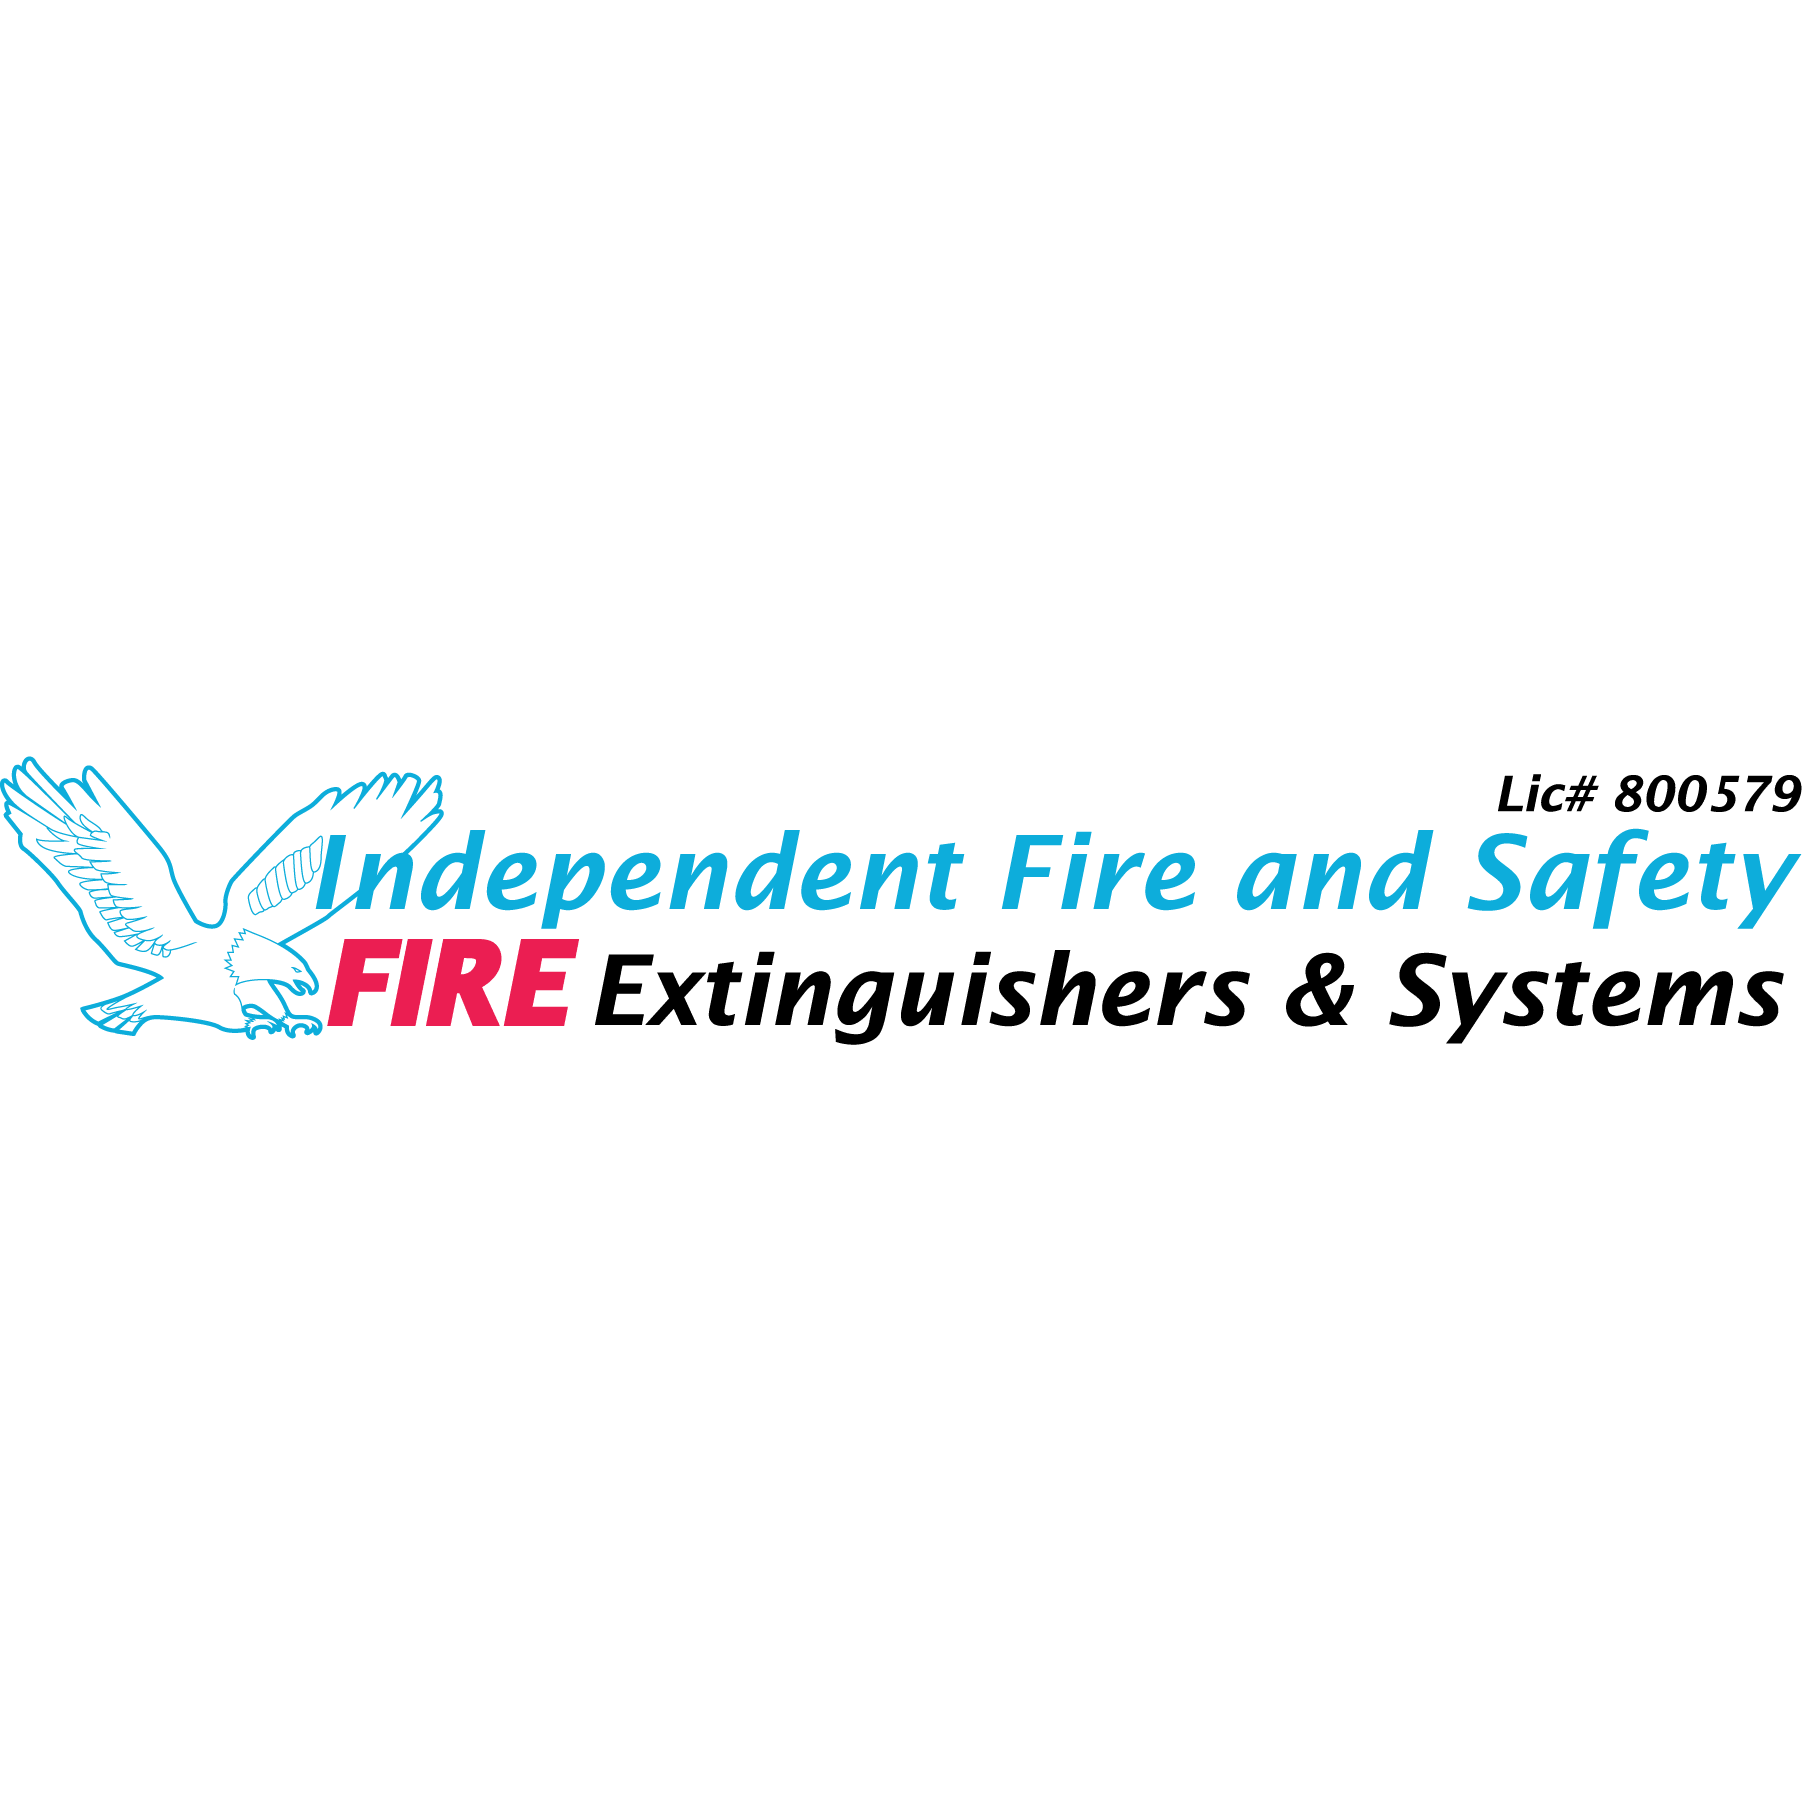 Independent Fire and Safety - Bakersfield, CA 93308 - (661)589-9091 | ShowMeLocal.com